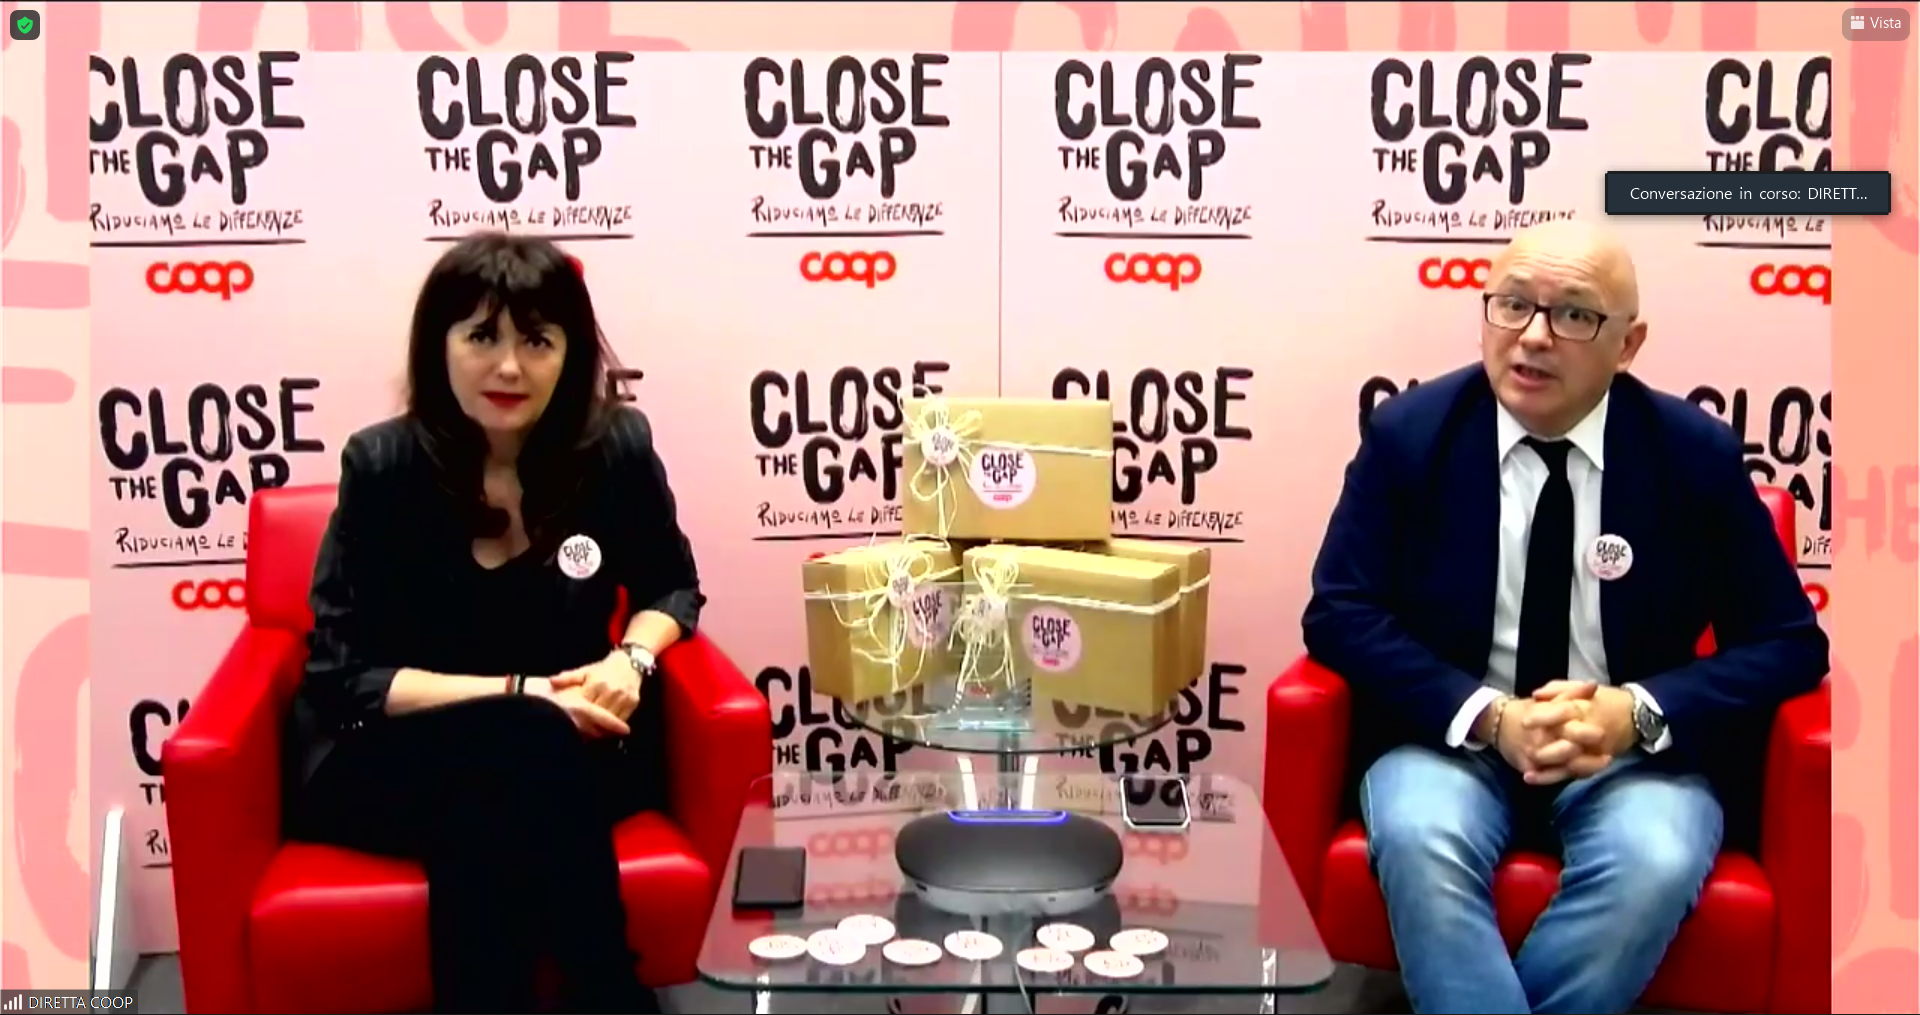 Close the Gap – riduciamo le differenze